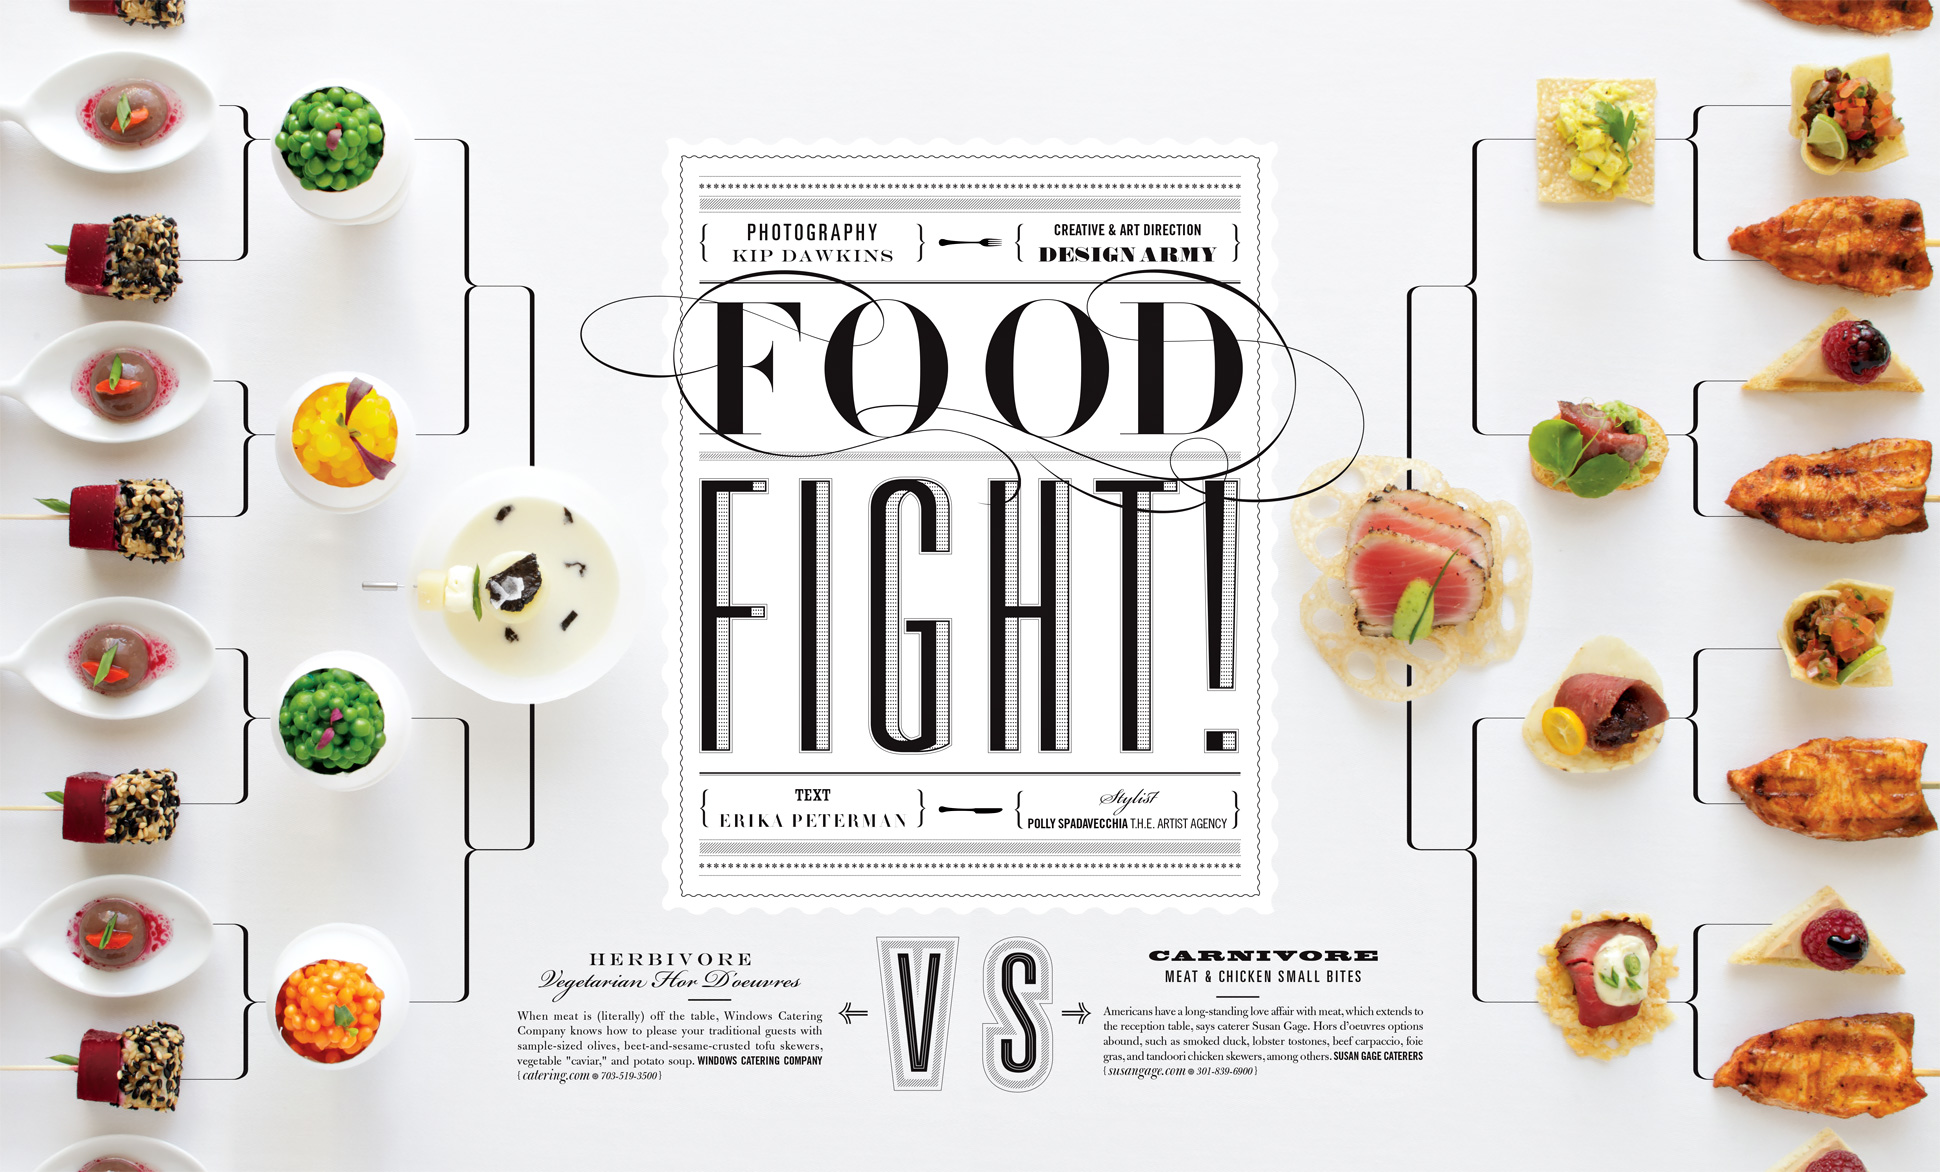 8-foodfight1